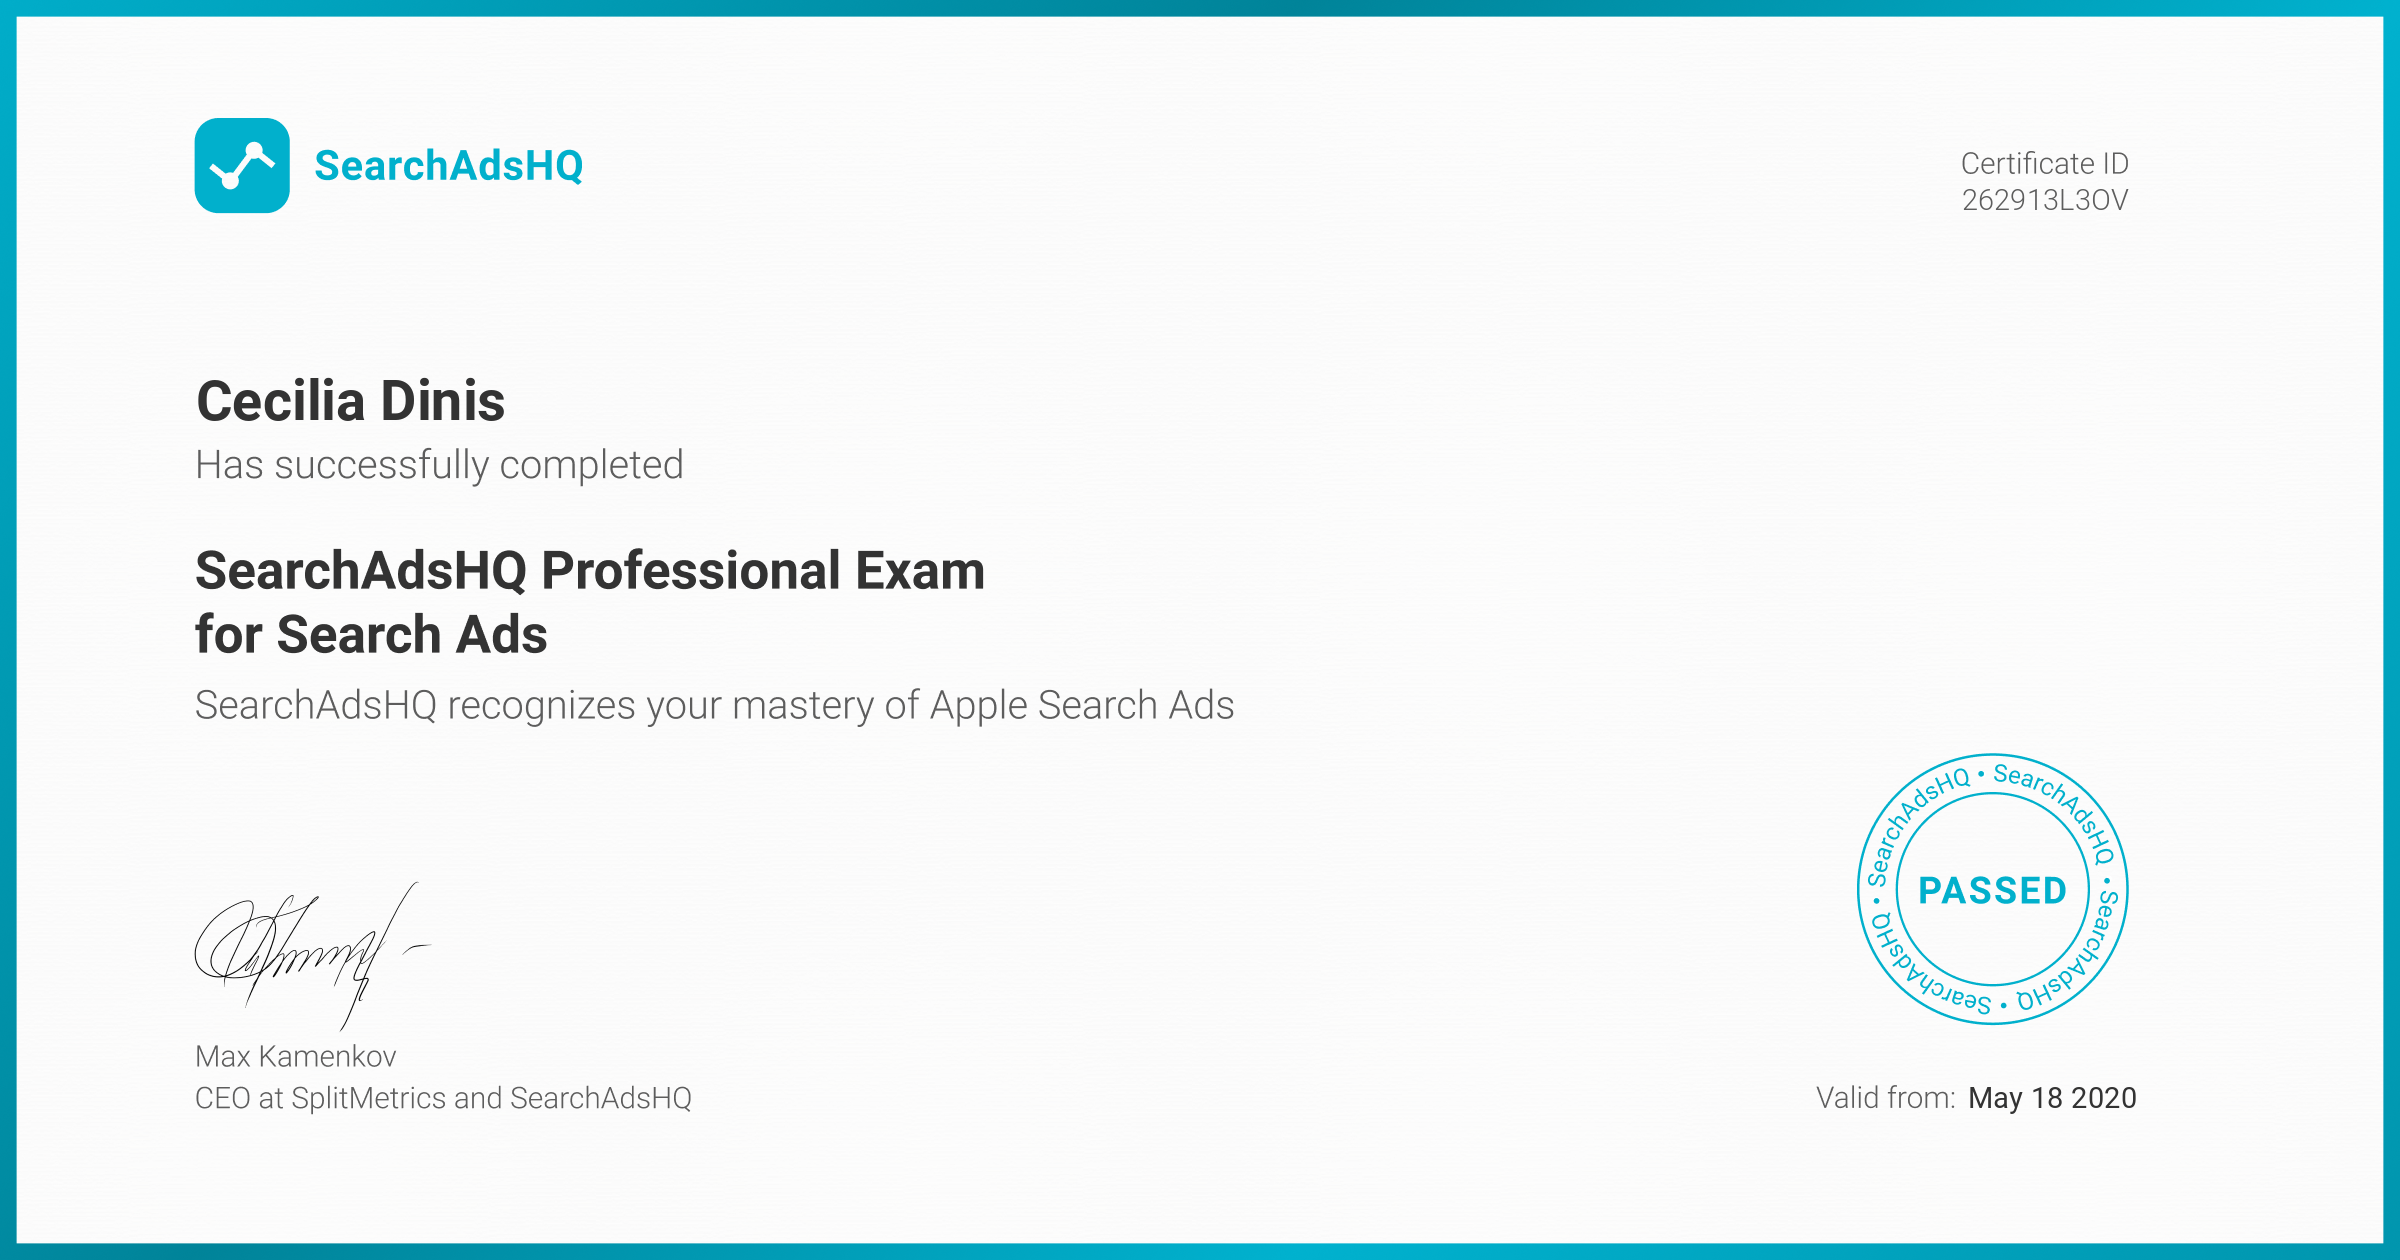 Certificate for Cecilia Dinis | SearchAdsHQ Professional Exam for Search Ads